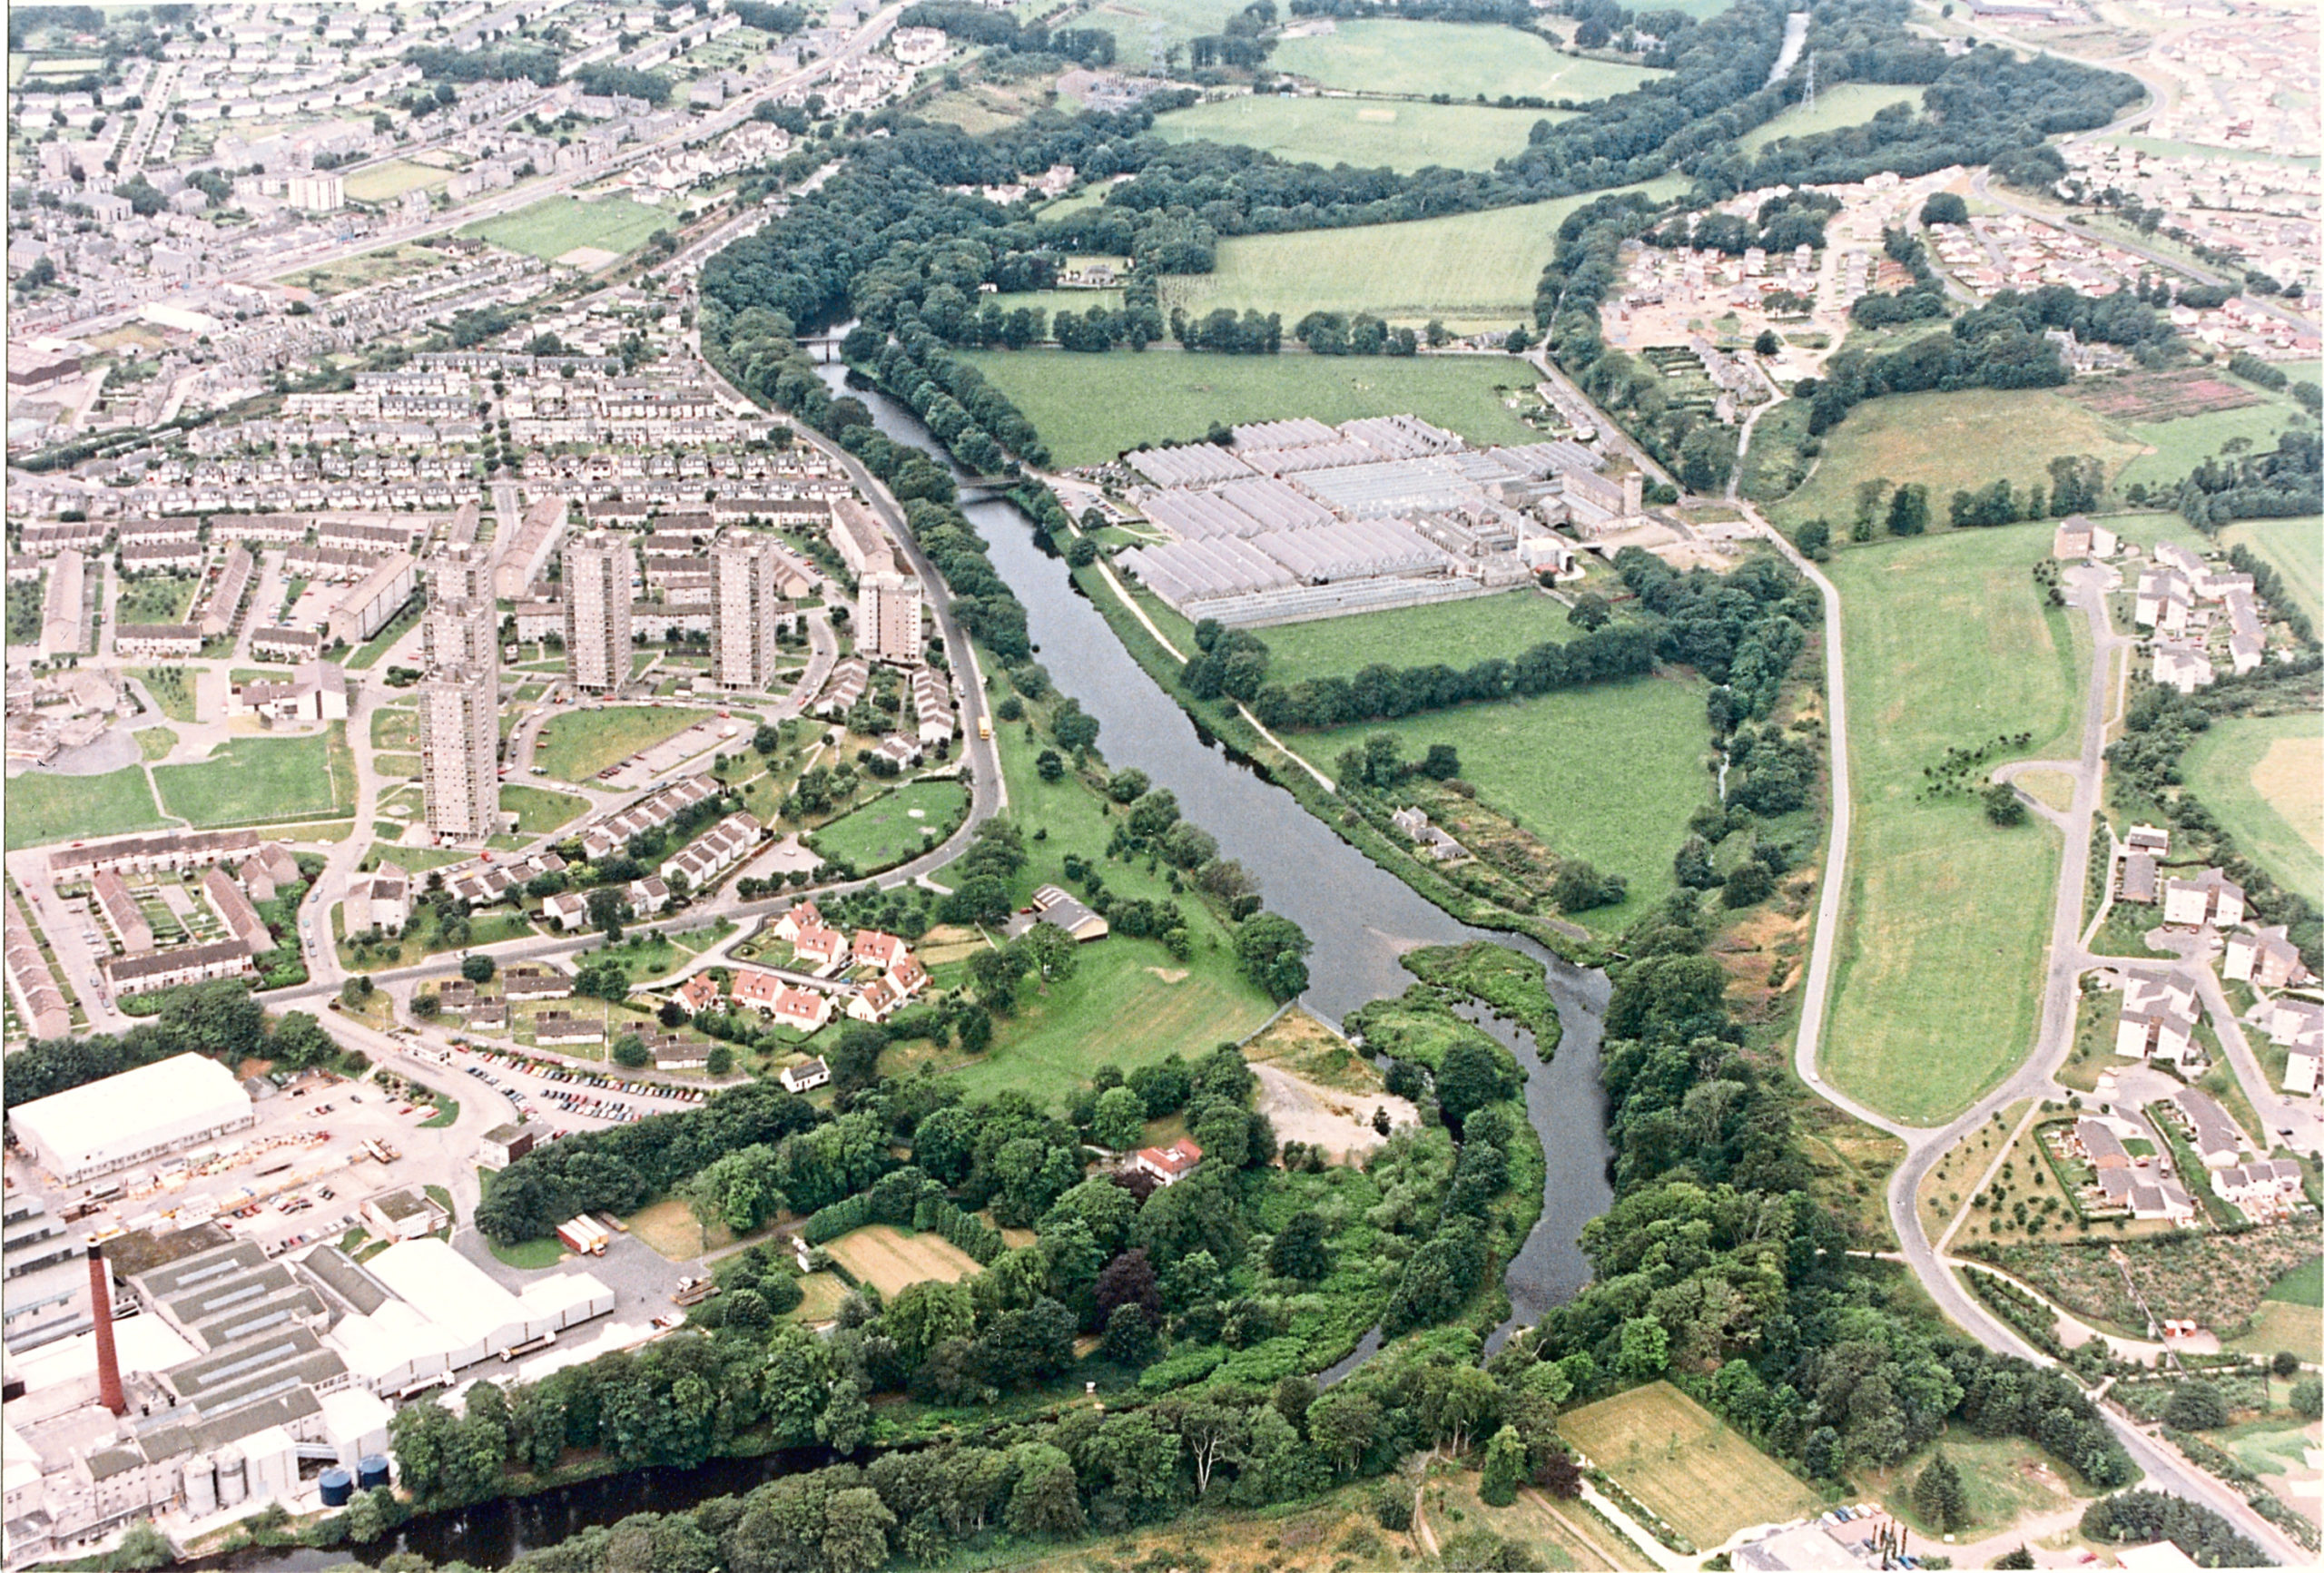 An aerial view of the River Don, Tillydrone and Grandholm Mills in 1991